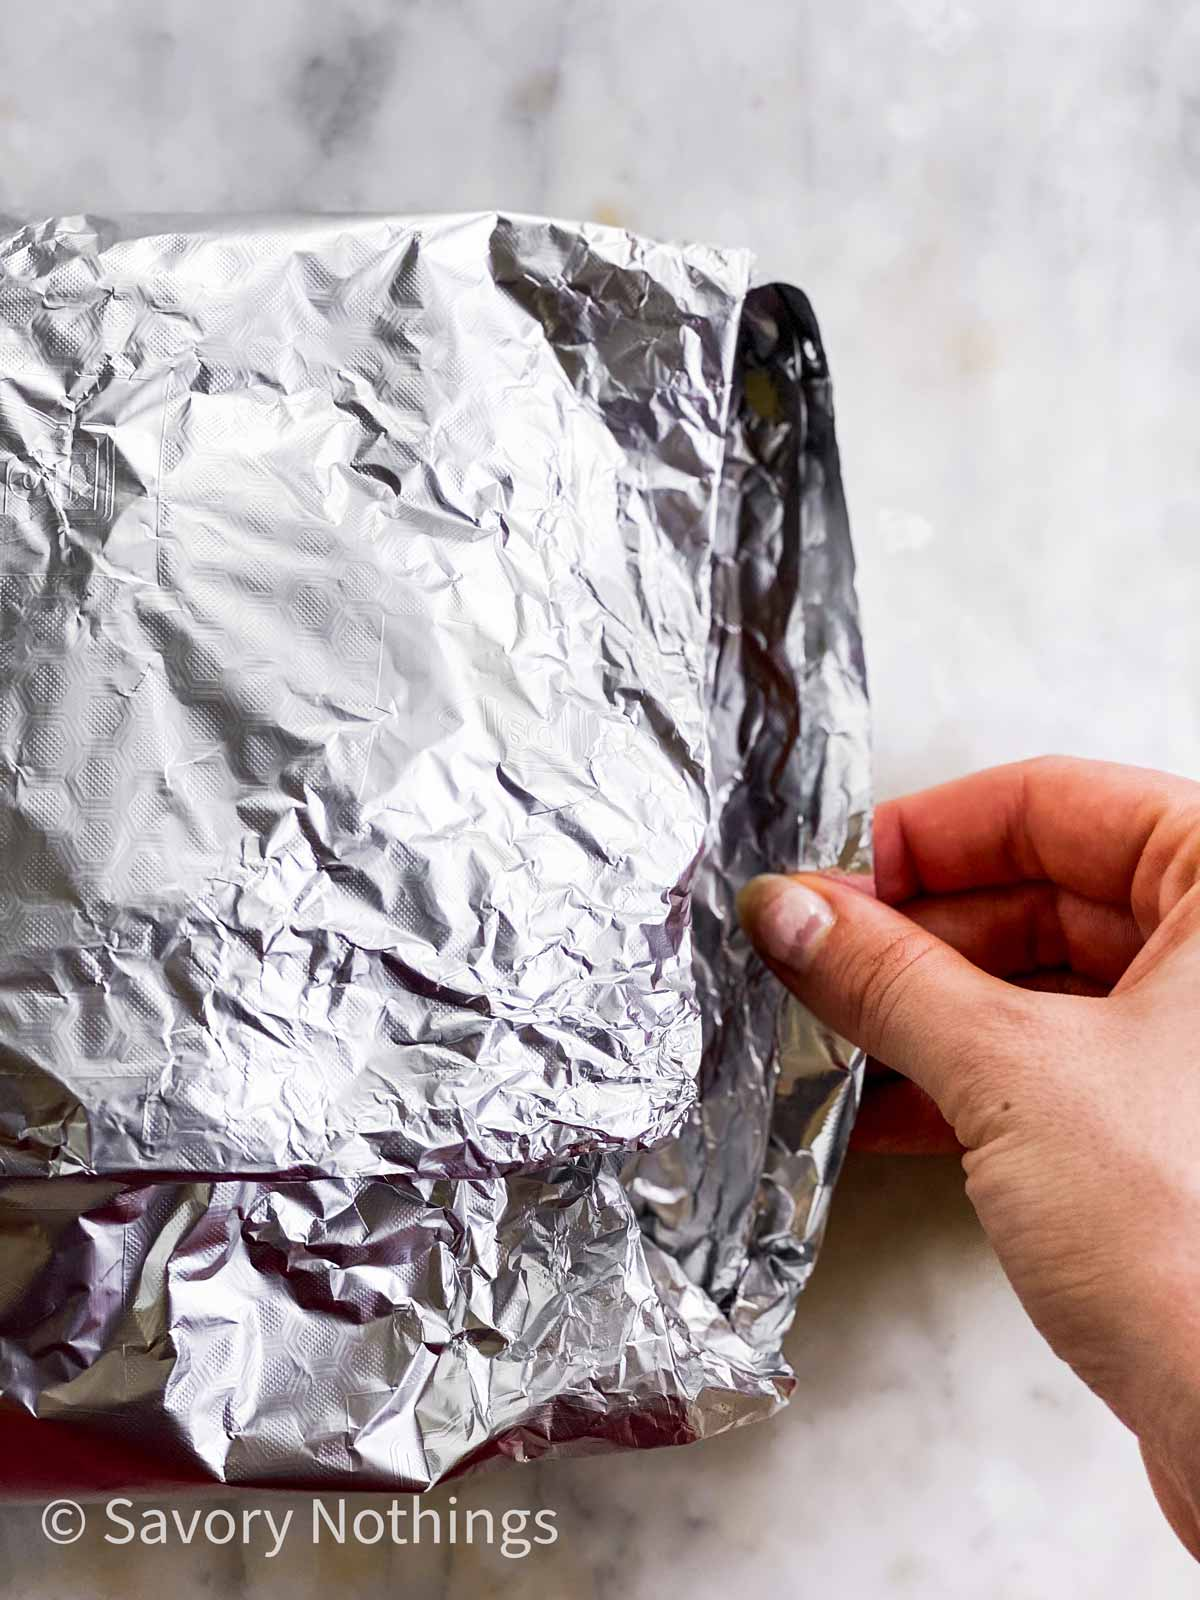 female hand pulling out edge of foil packet